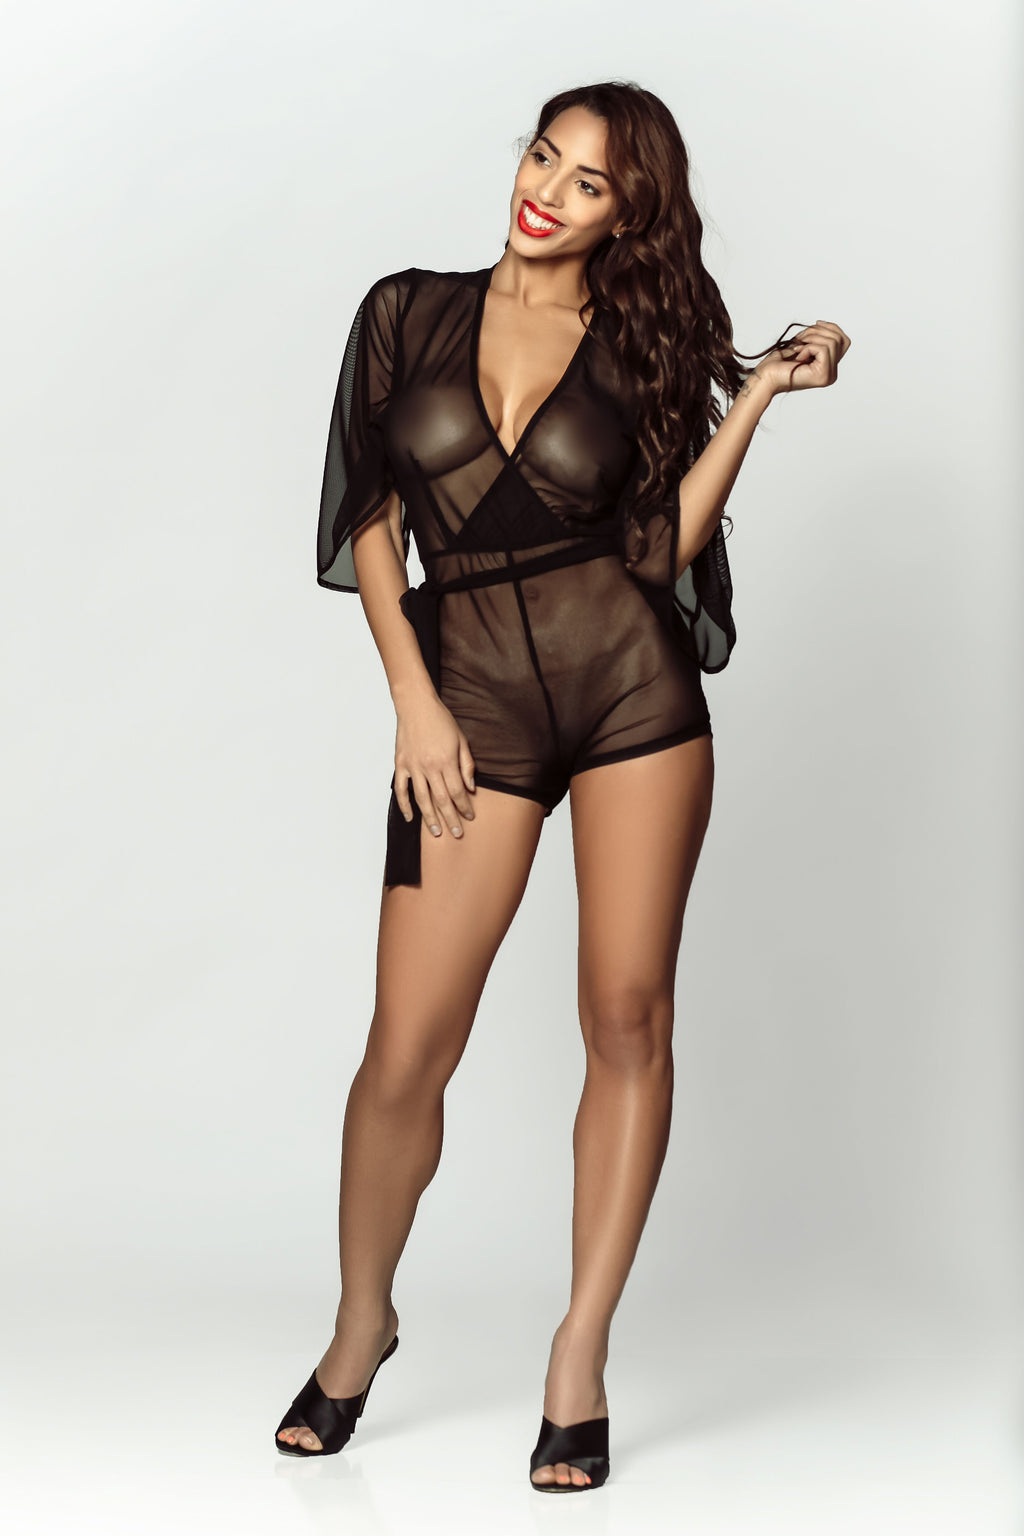 buy sexy black lingerie online from damita belle